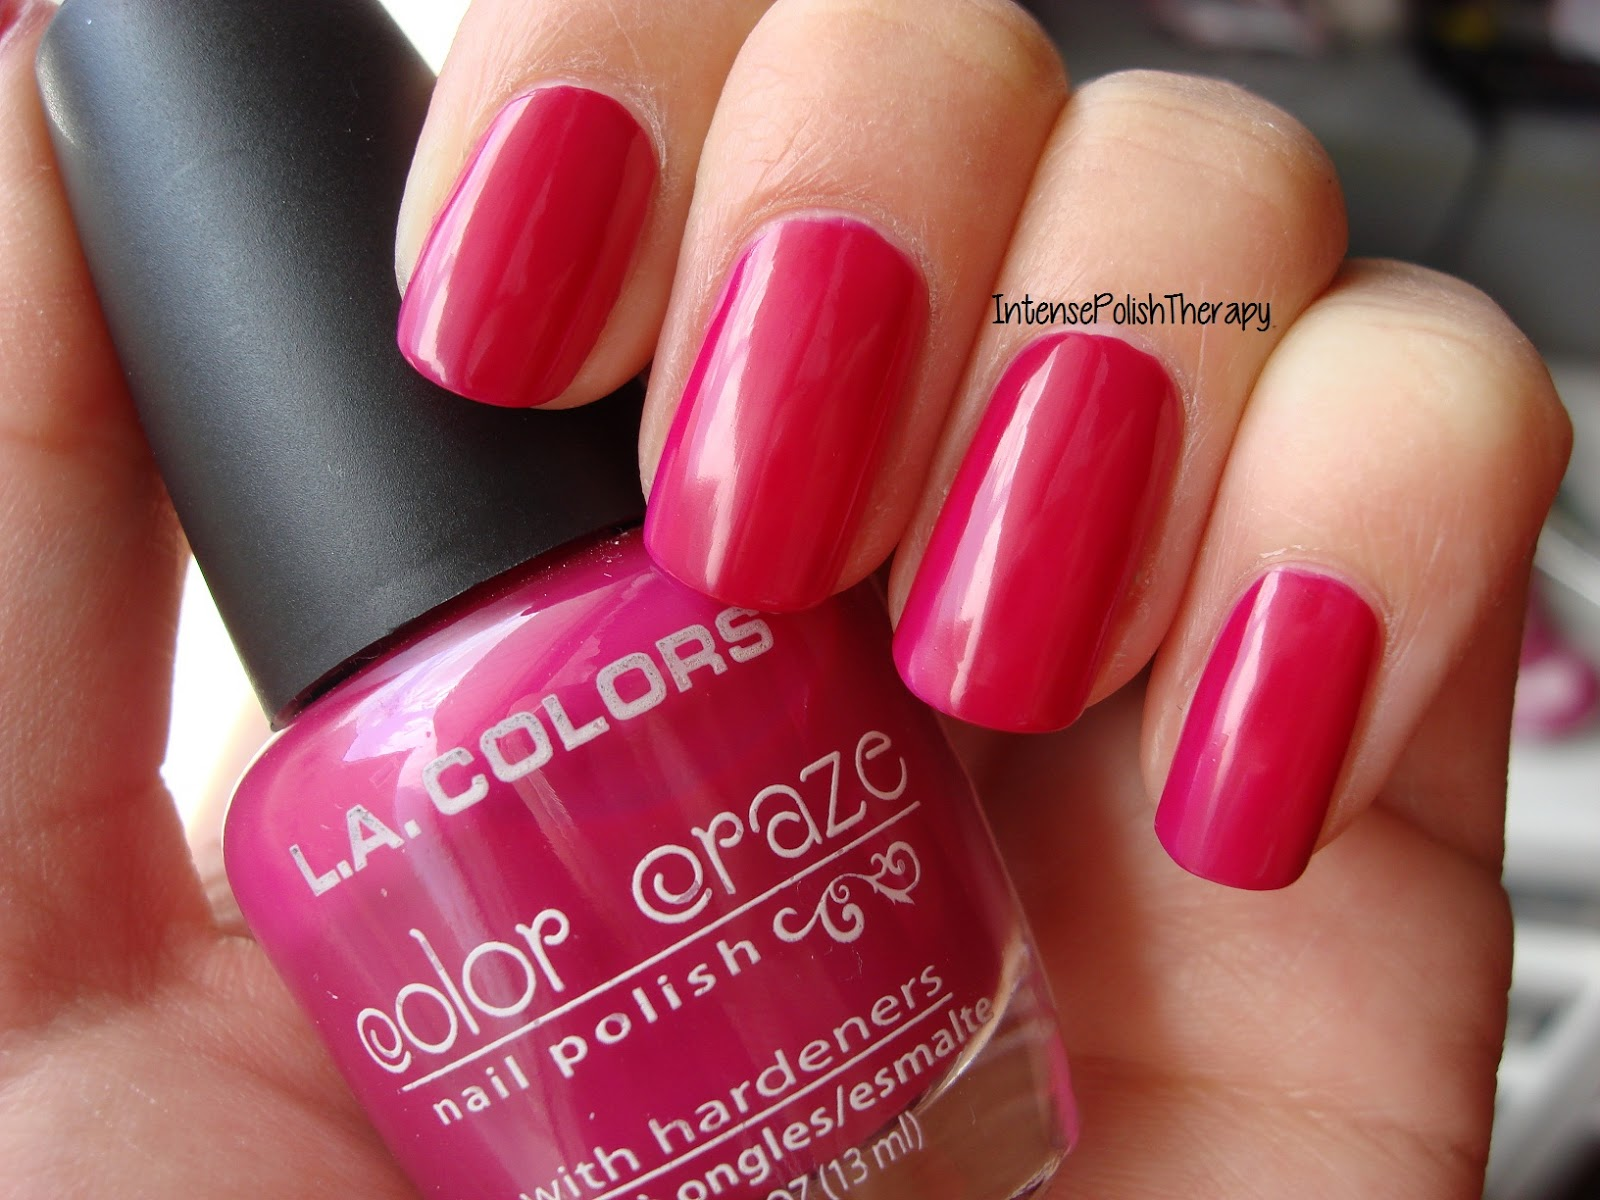 Intense Polish Therapy: L.A. Colors Swatches & Review